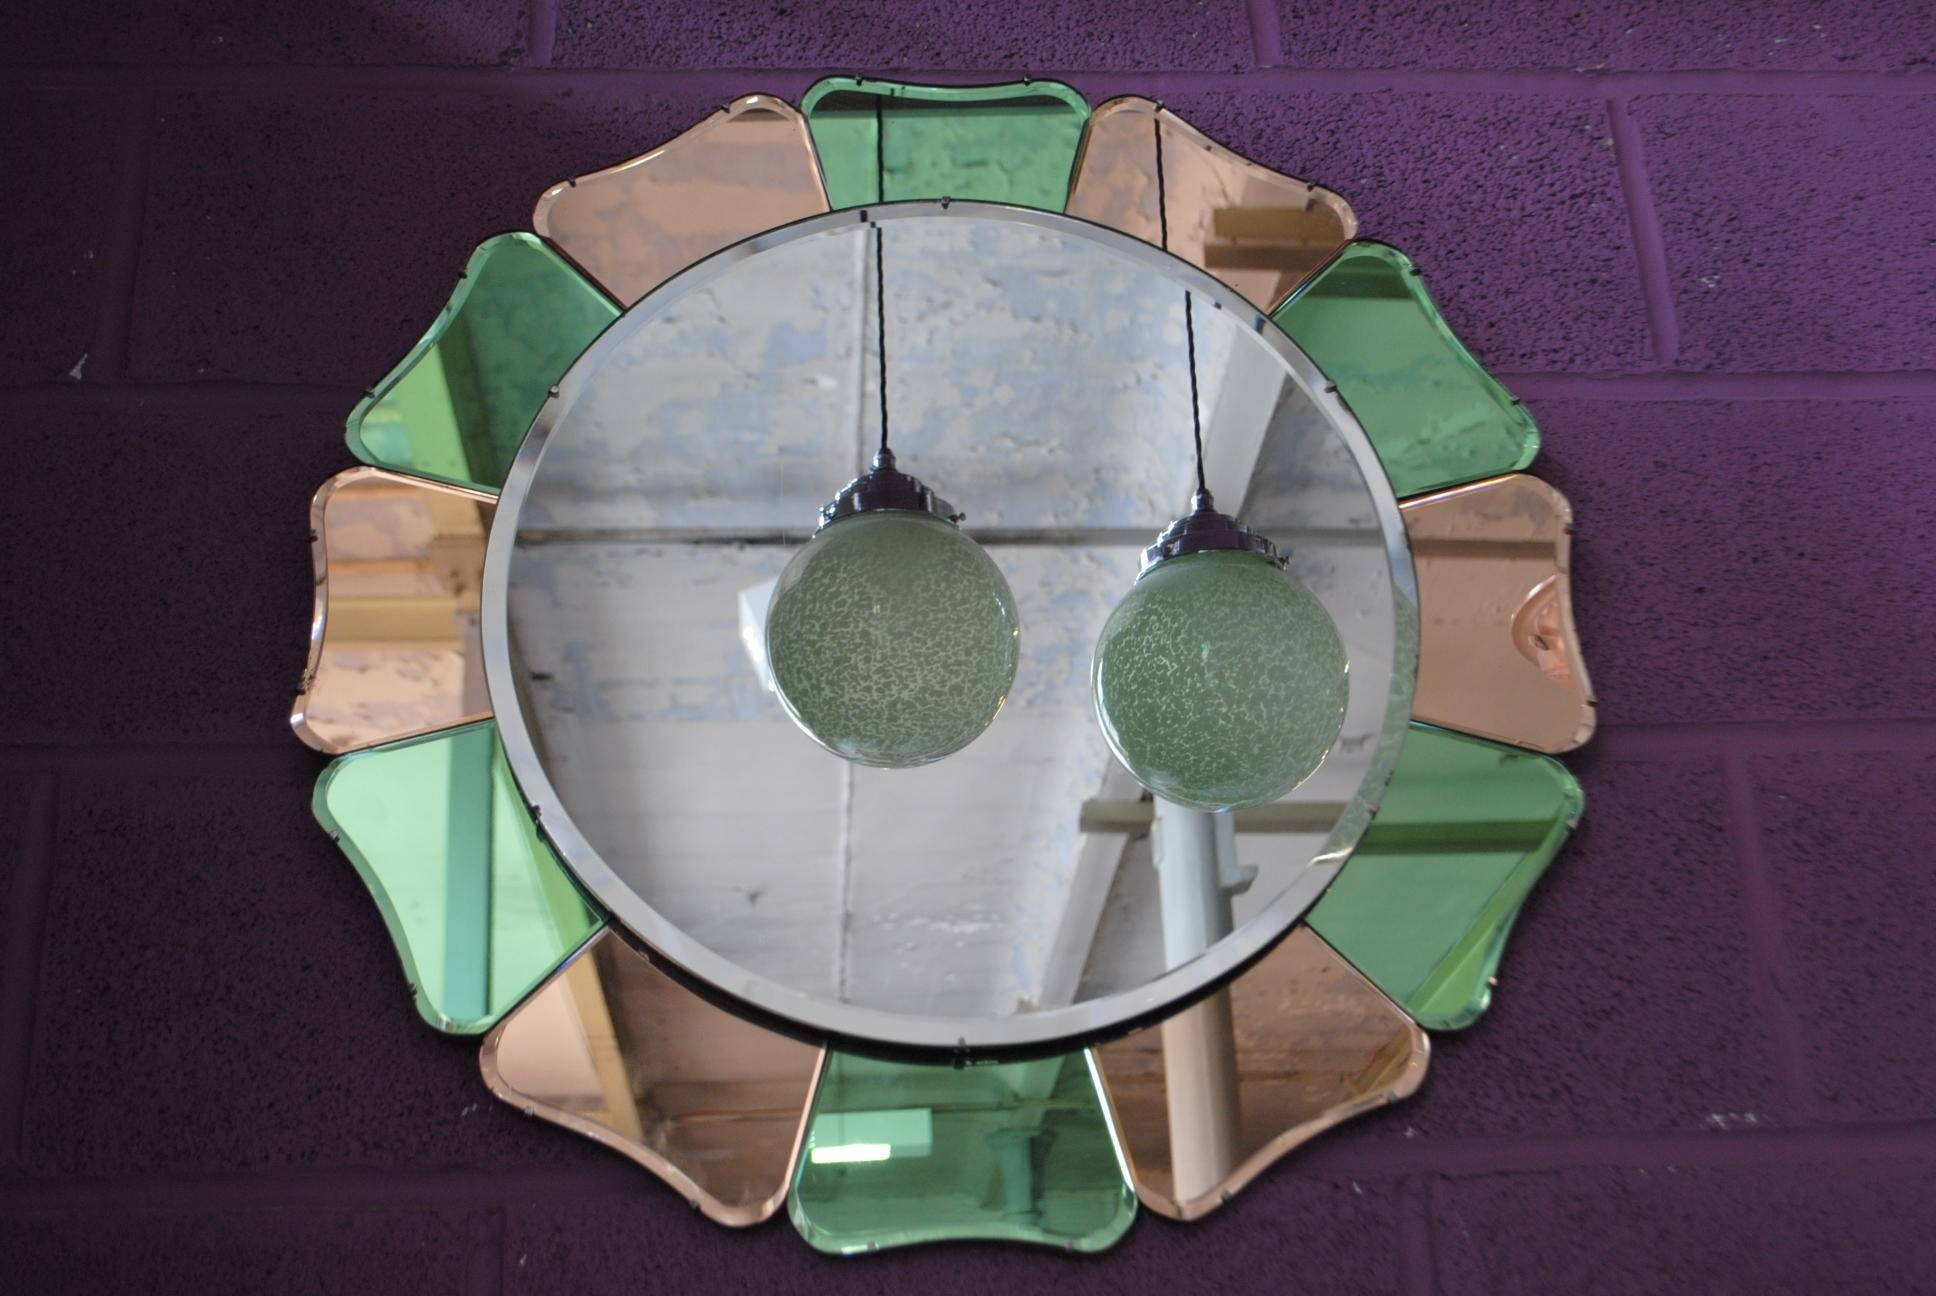 Petal Shape Original Art Deco Mirror || Cloud 9, Art Deco Throughout Original Art Deco Mirrors (View 22 of 25)